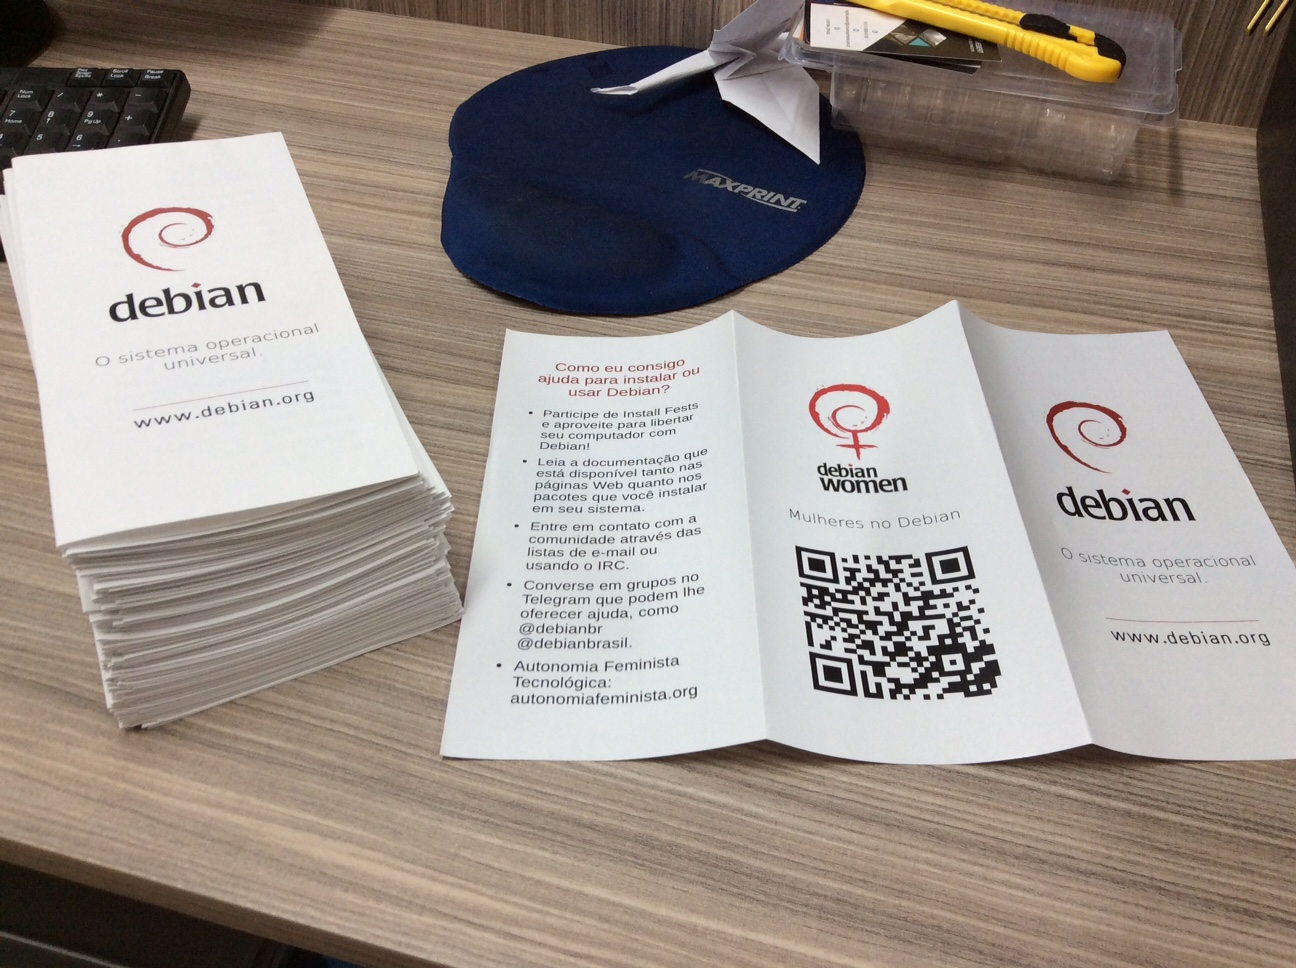 A pile with folded Debian Women folders. The writings are in Portuguese and it's possible to see a QR code.